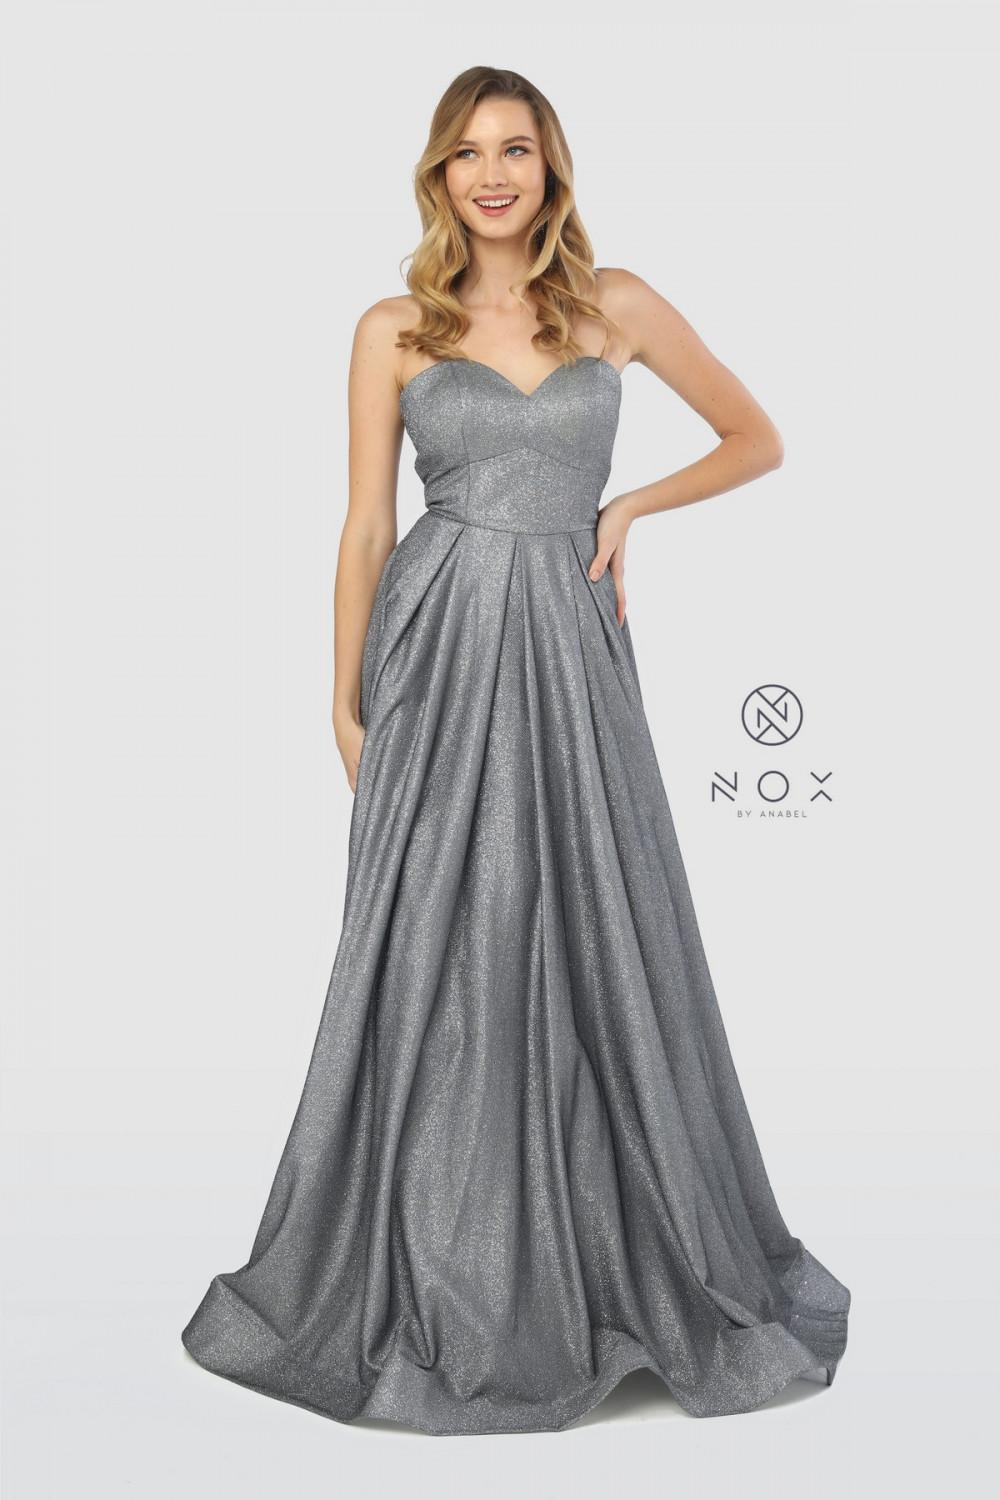 Nox N T258 - Strapless Metallic Gown with Corset Back - Diggz Prom